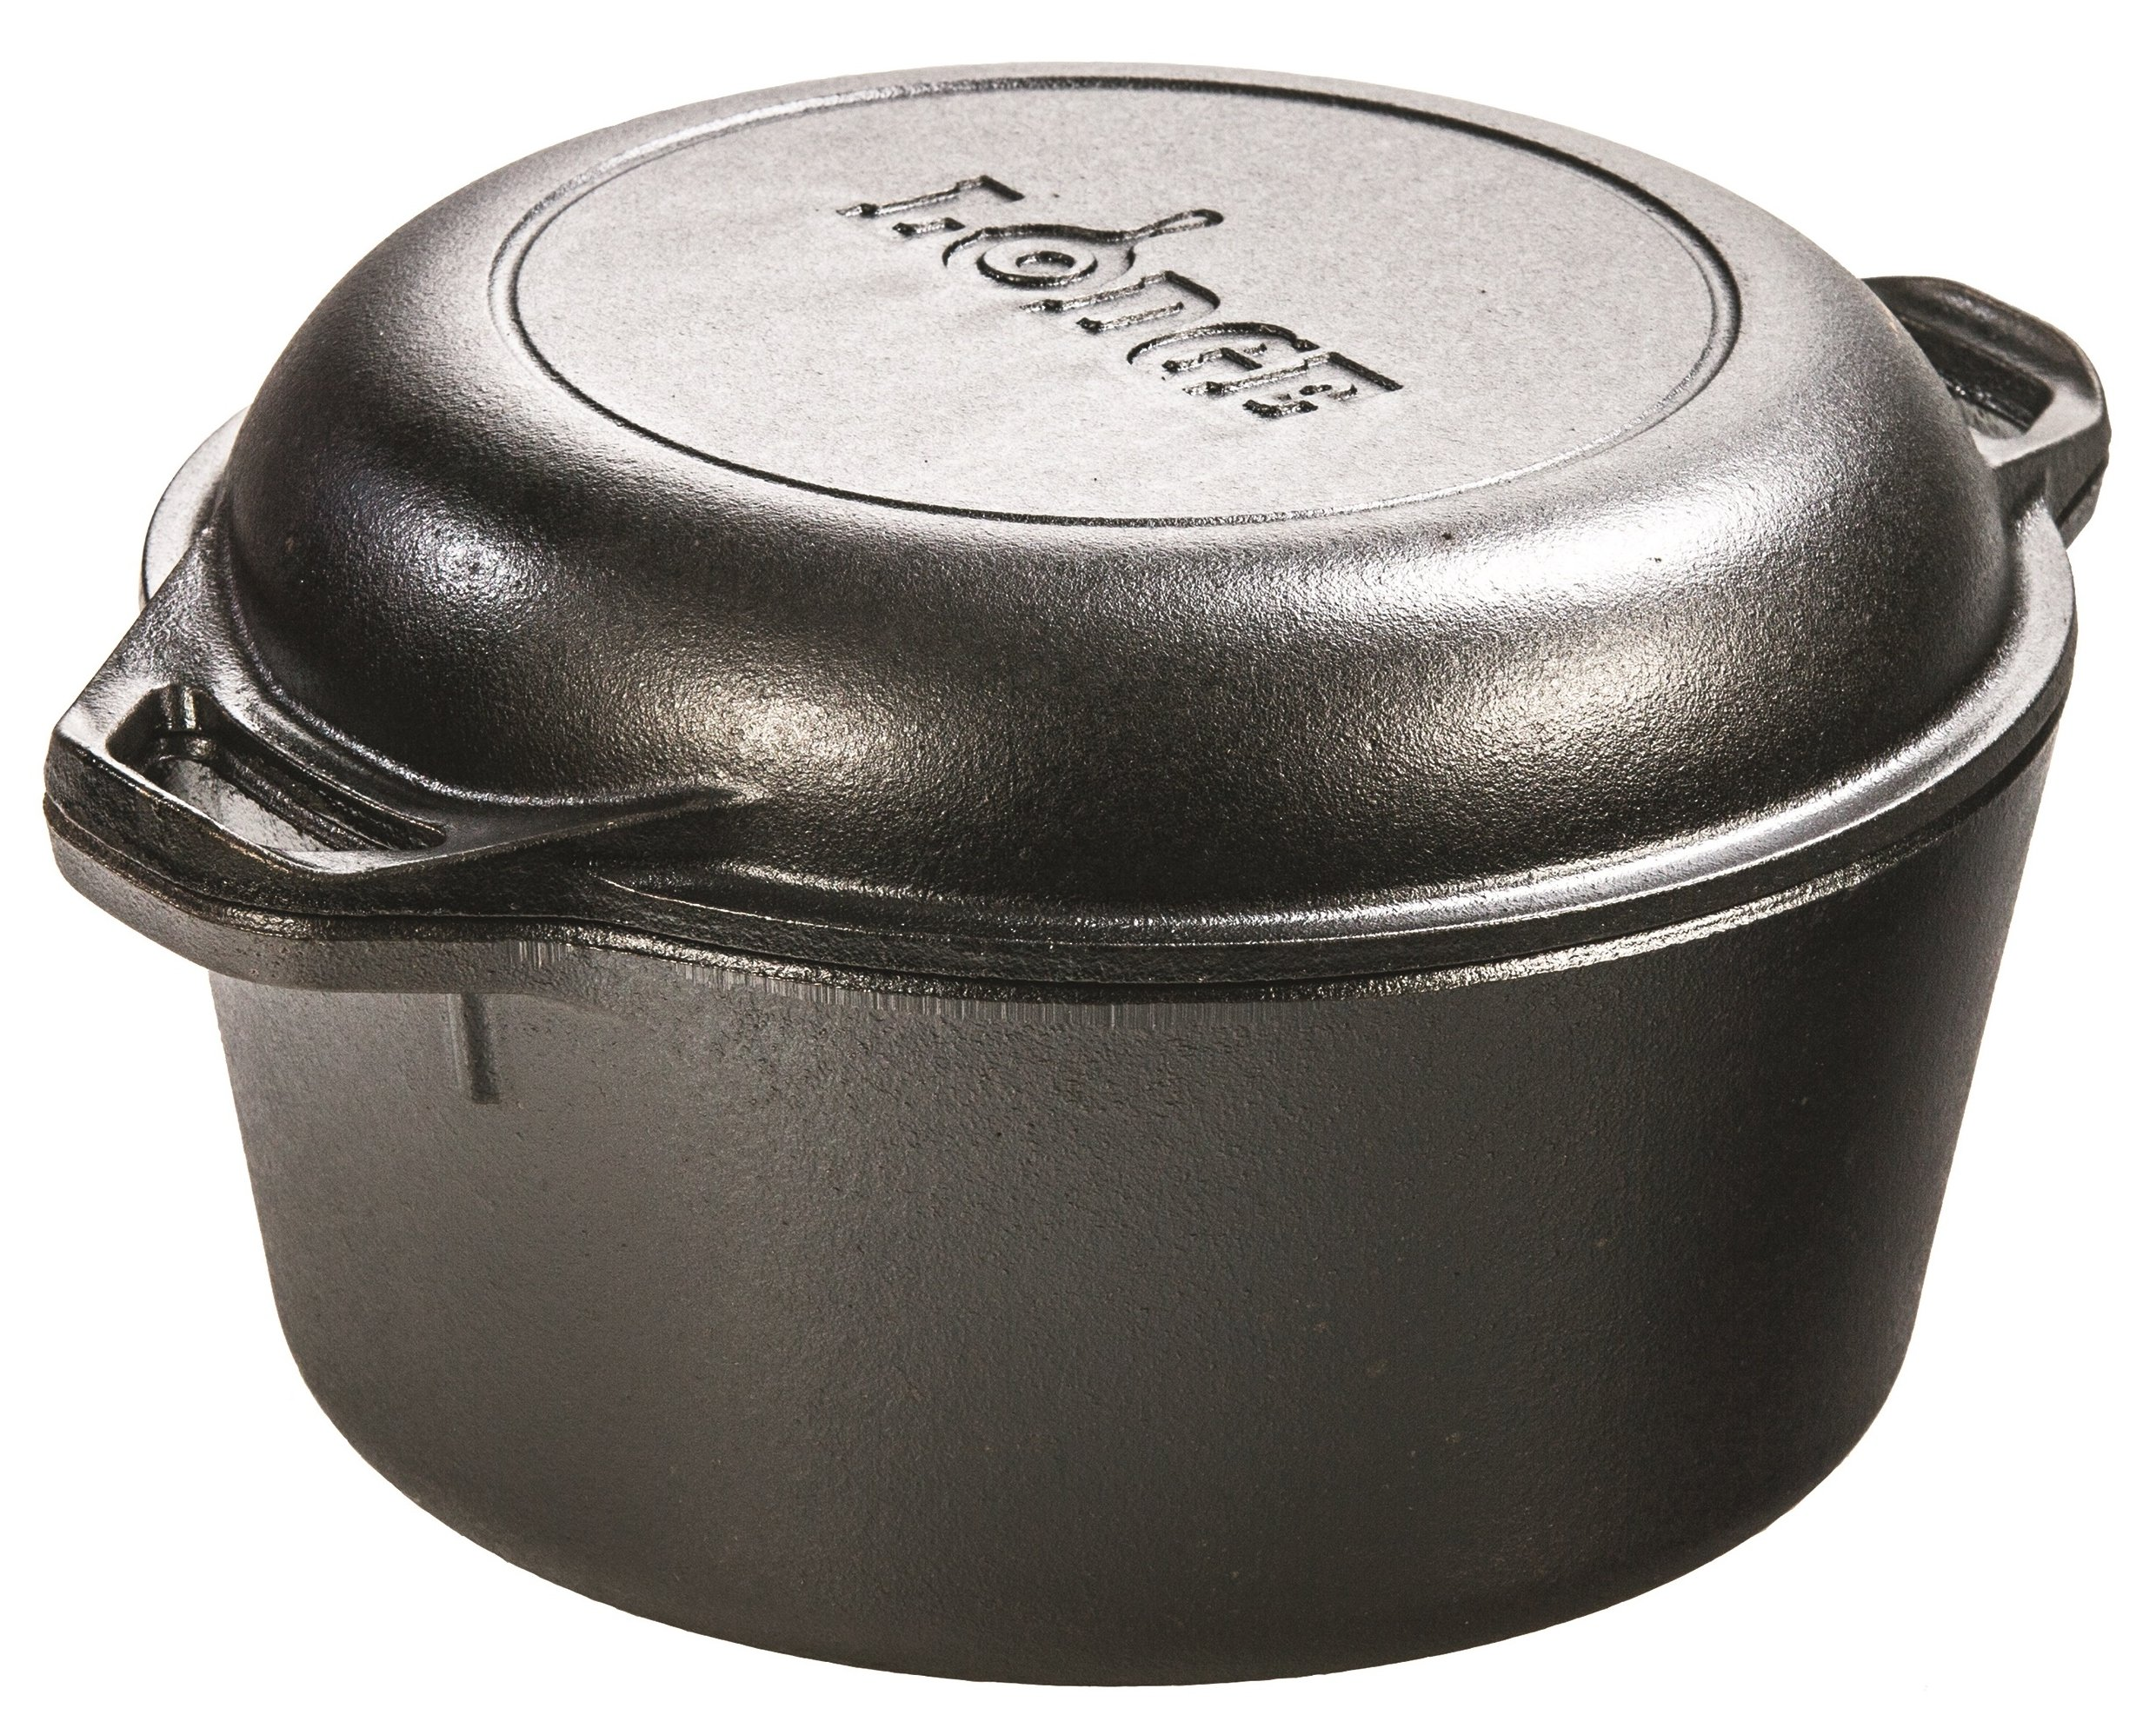 Lodge L8DD3 Cast Iron Dutch Oven 5 qt by Lodge (Image #1)